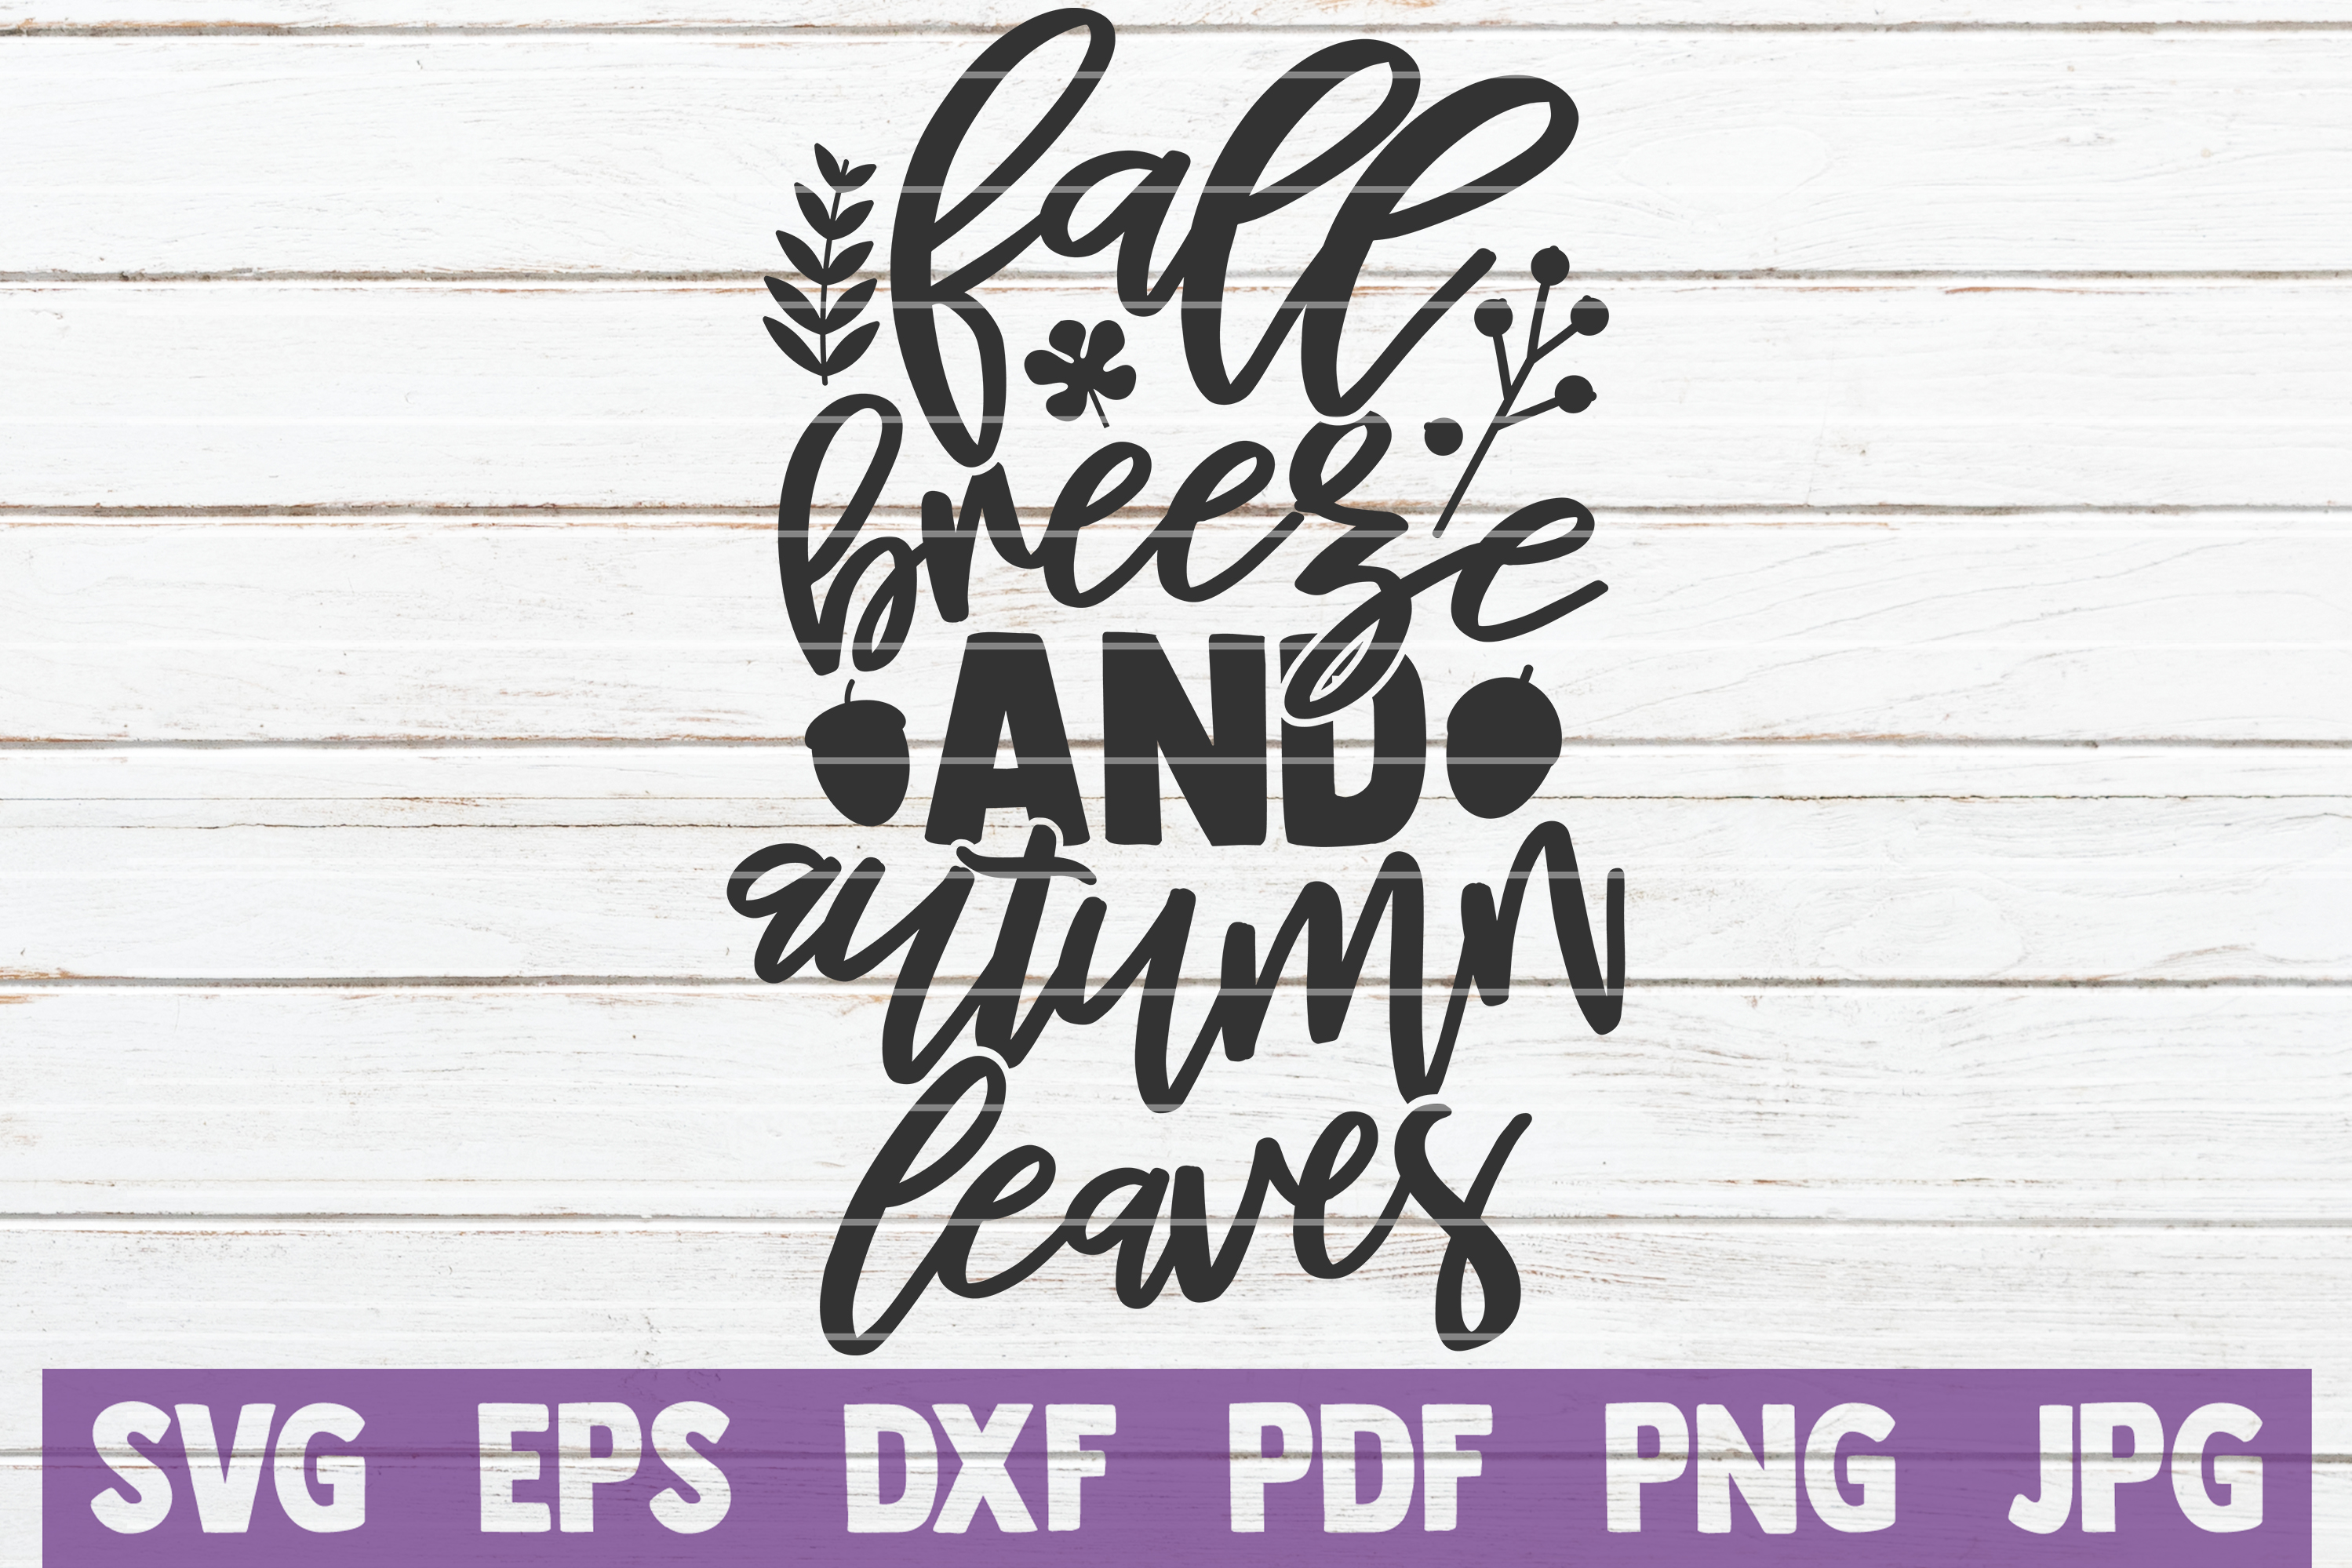 Download Free 4129 Graphic Graphic Templates 2020 Page 160 Of 330 for Cricut Explore, Silhouette and other cutting machines.